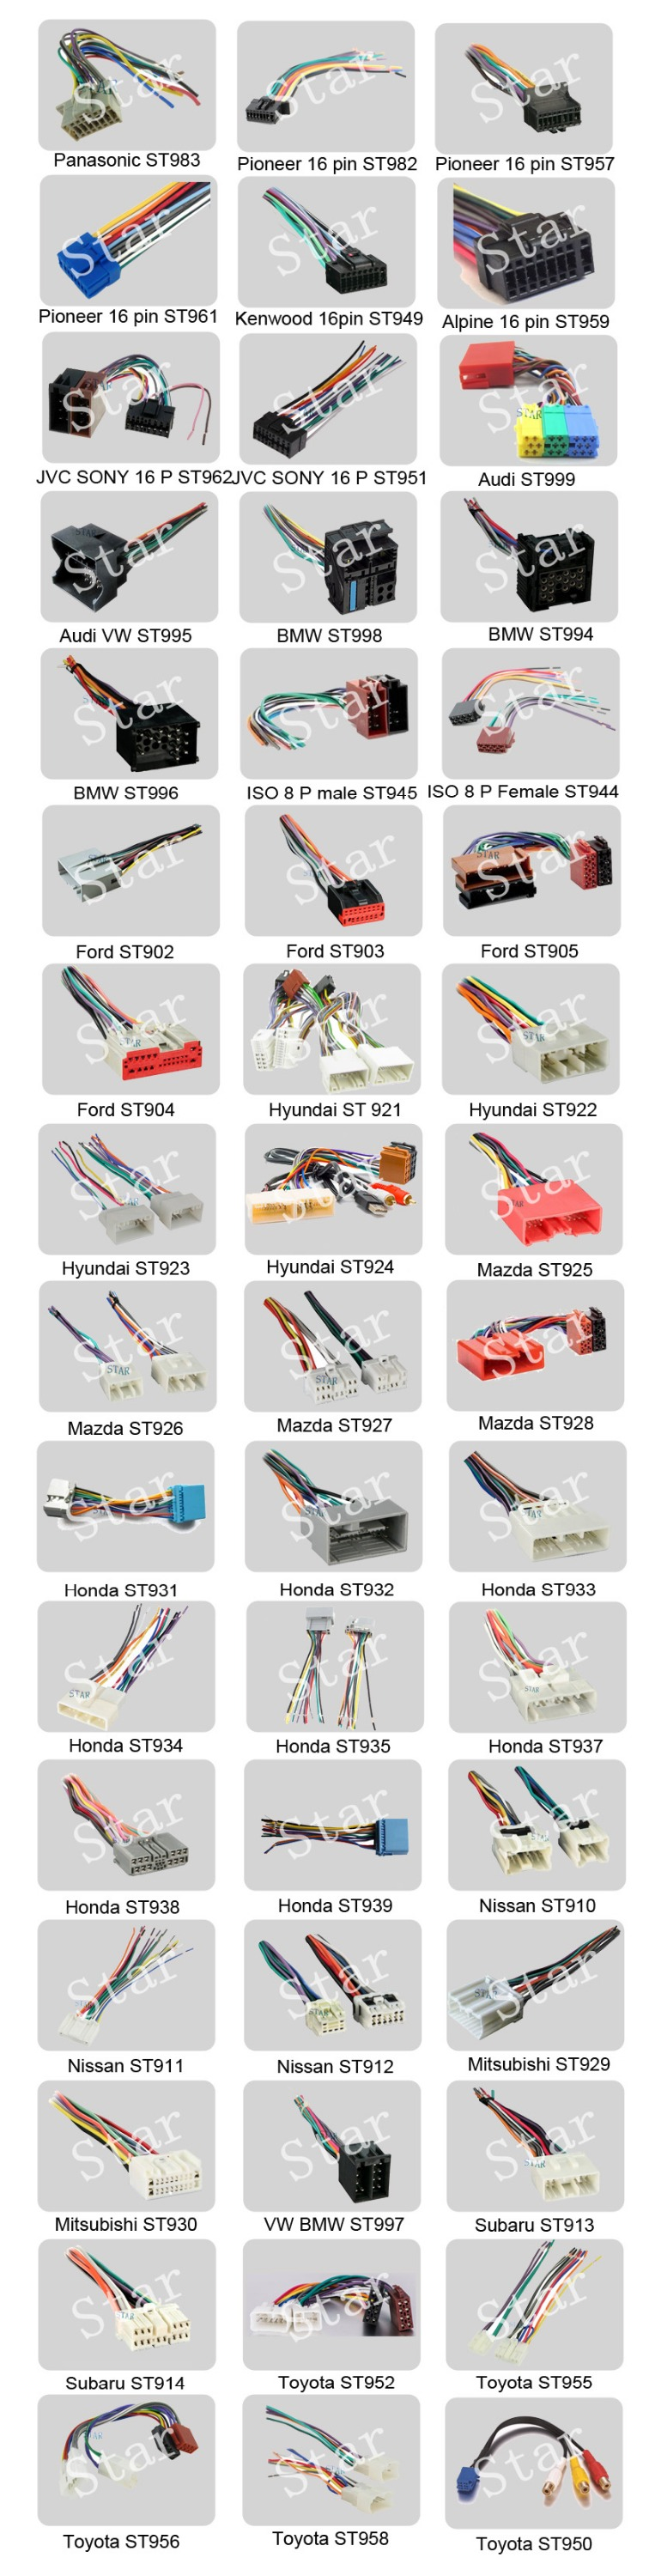 custom automotive 28 pin toyota audio wire harness manufacturer custom automotive 28 pin toyota audio wire harness manufacturer for car gps